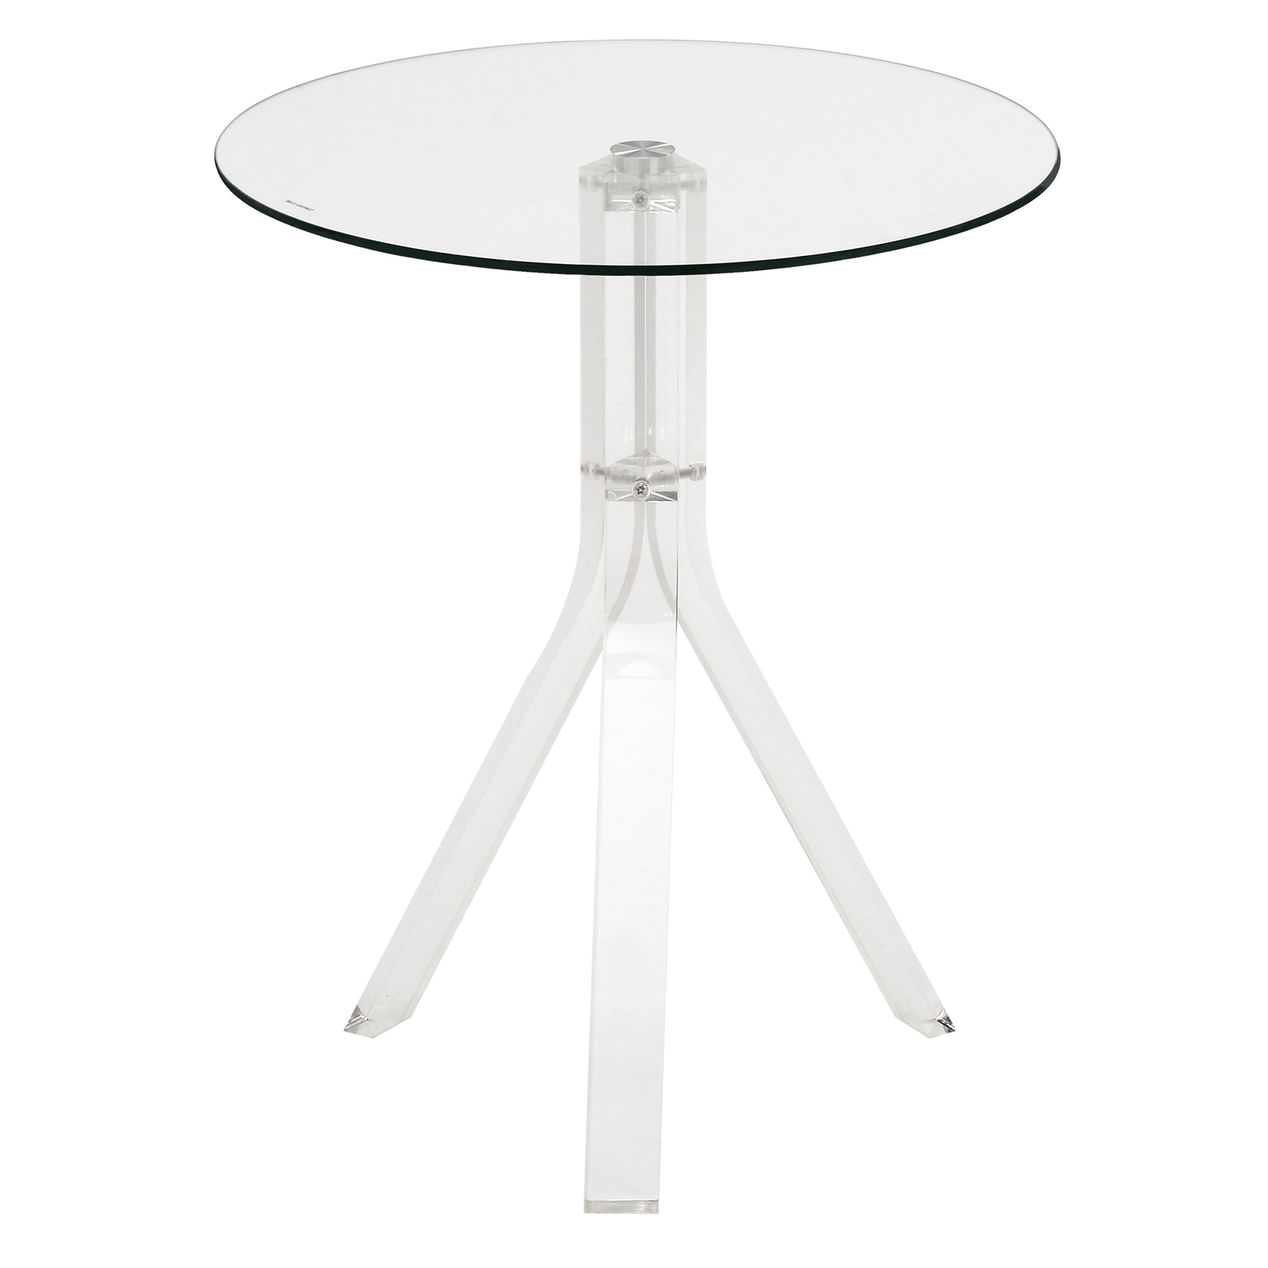 acrylic round accent table home inch square vinyl tablecloth height tables cement dining room essentials lamp furniture wellington ashley porcelain vase high back chairs modern